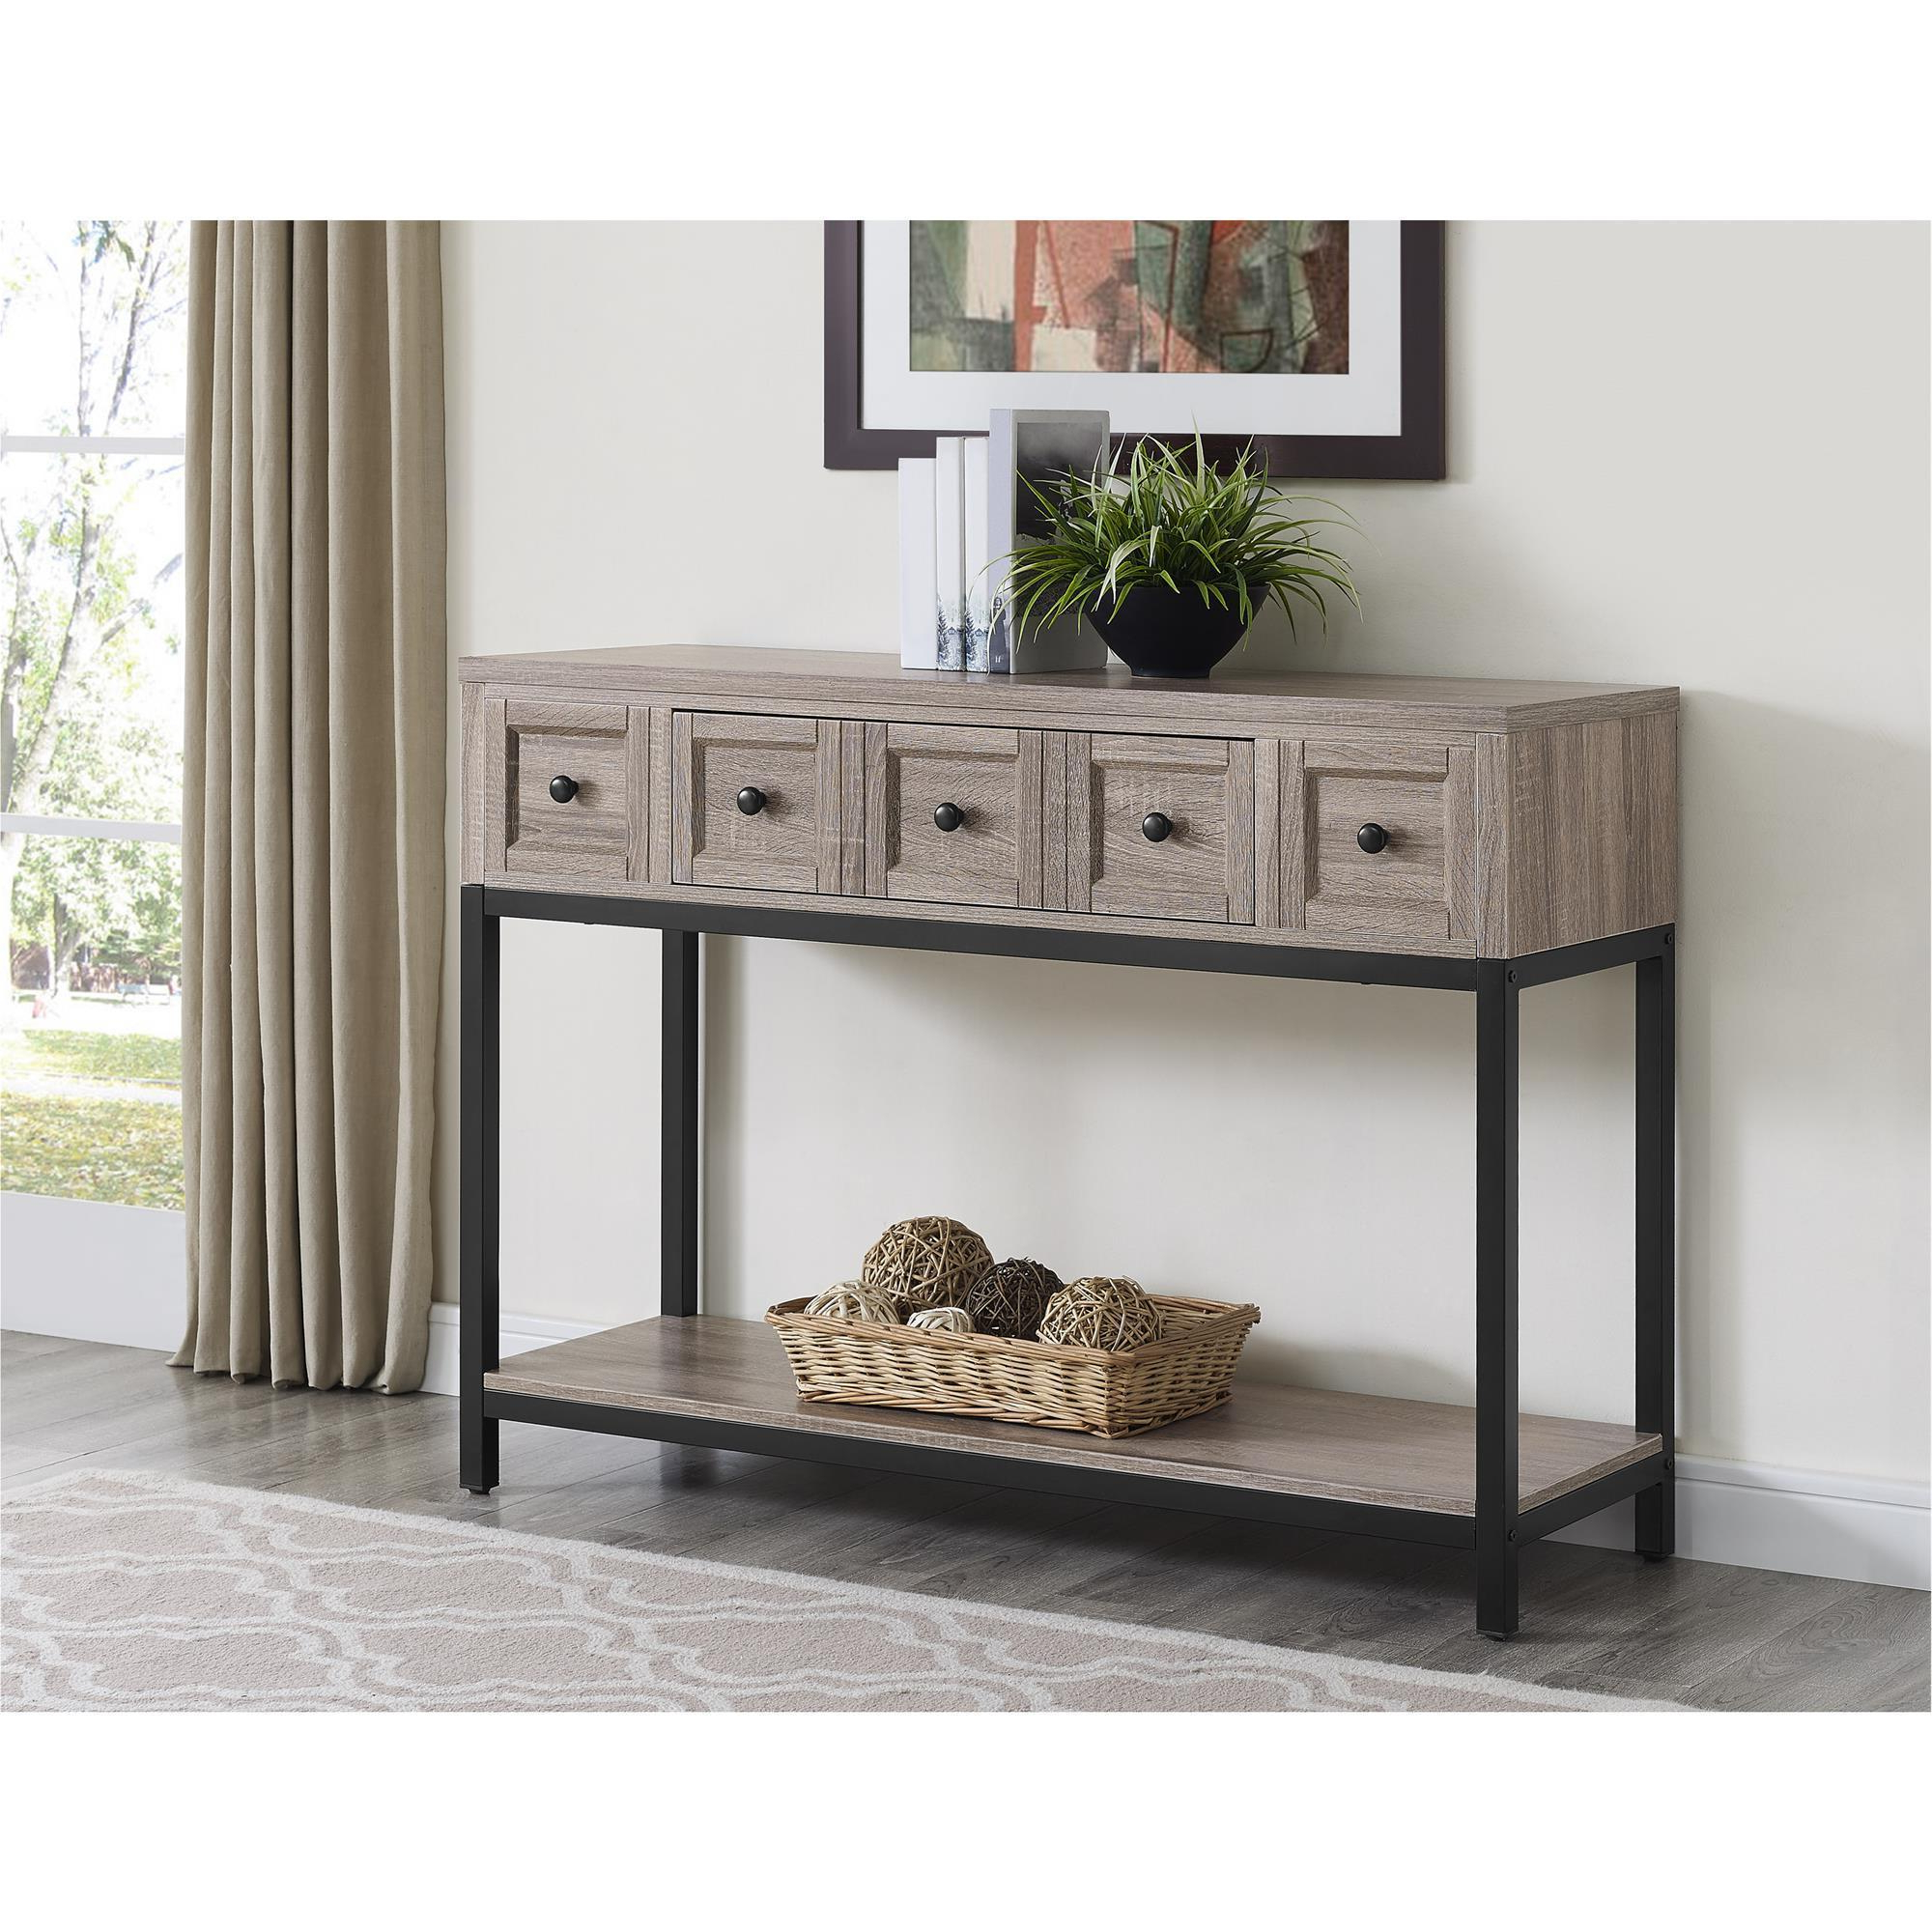 Favorite Shop The Gray Barn Latigo Sonoma Oak Modern Farmhouse Console Table Within Layered Wood Small Square Console Tables (View 7 of 20)